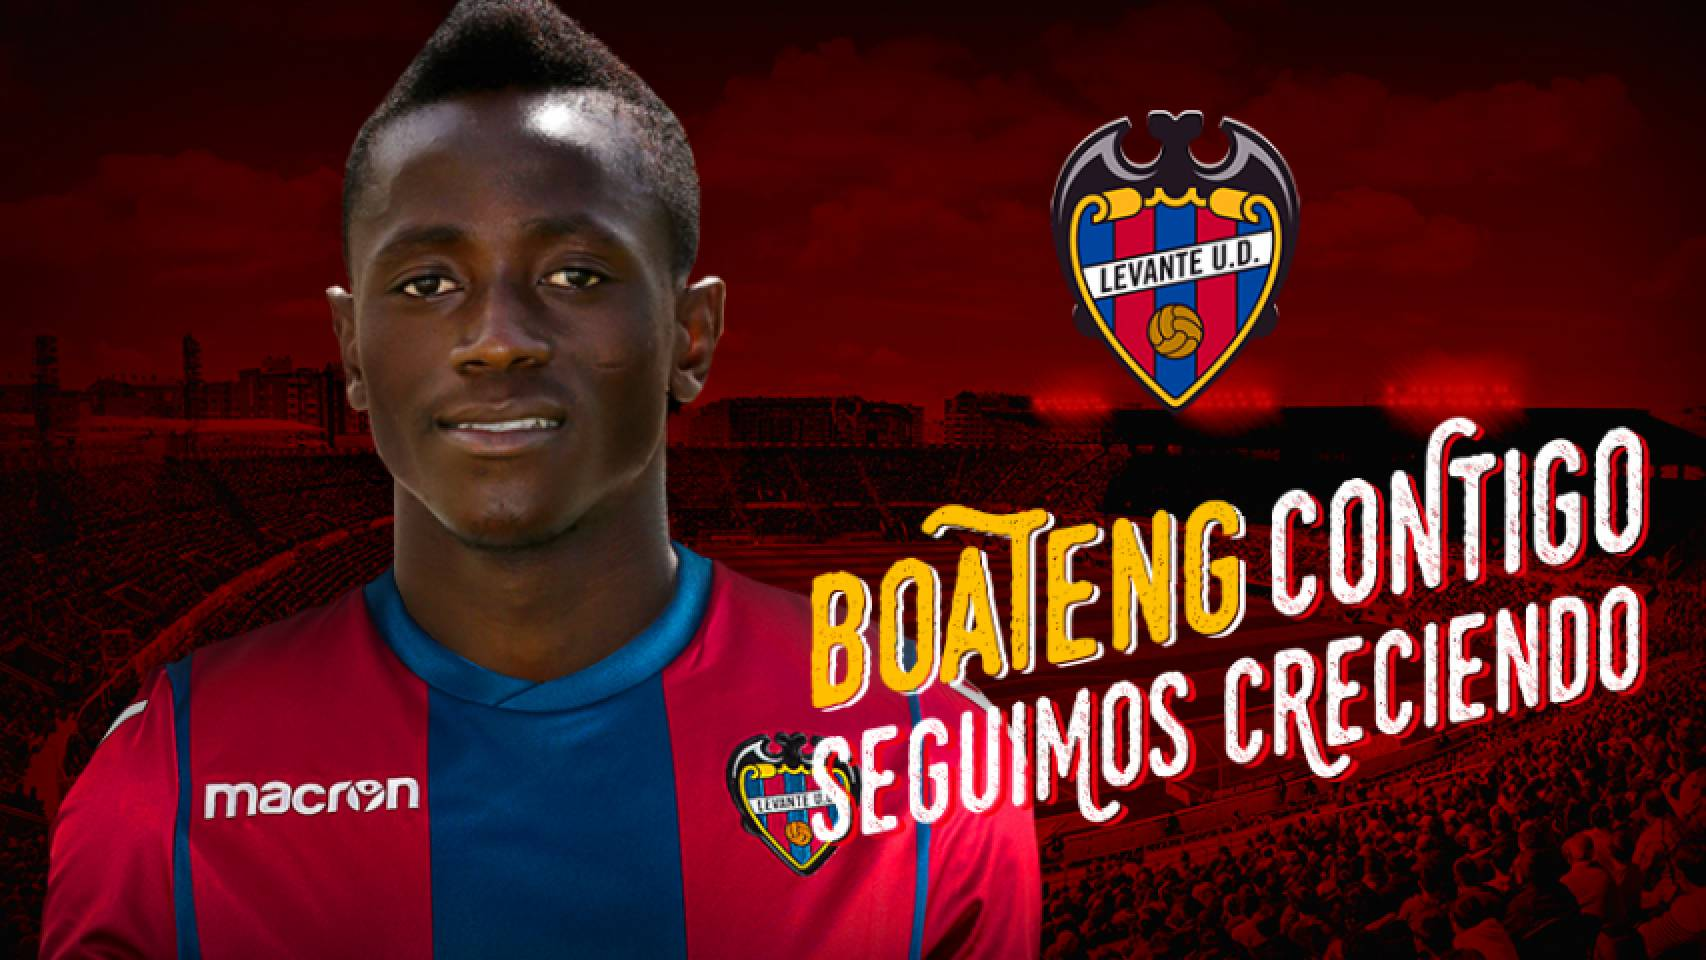 Ghana youth striker Emmanuel Boateng debuts for Levante in Spanish La Liga win